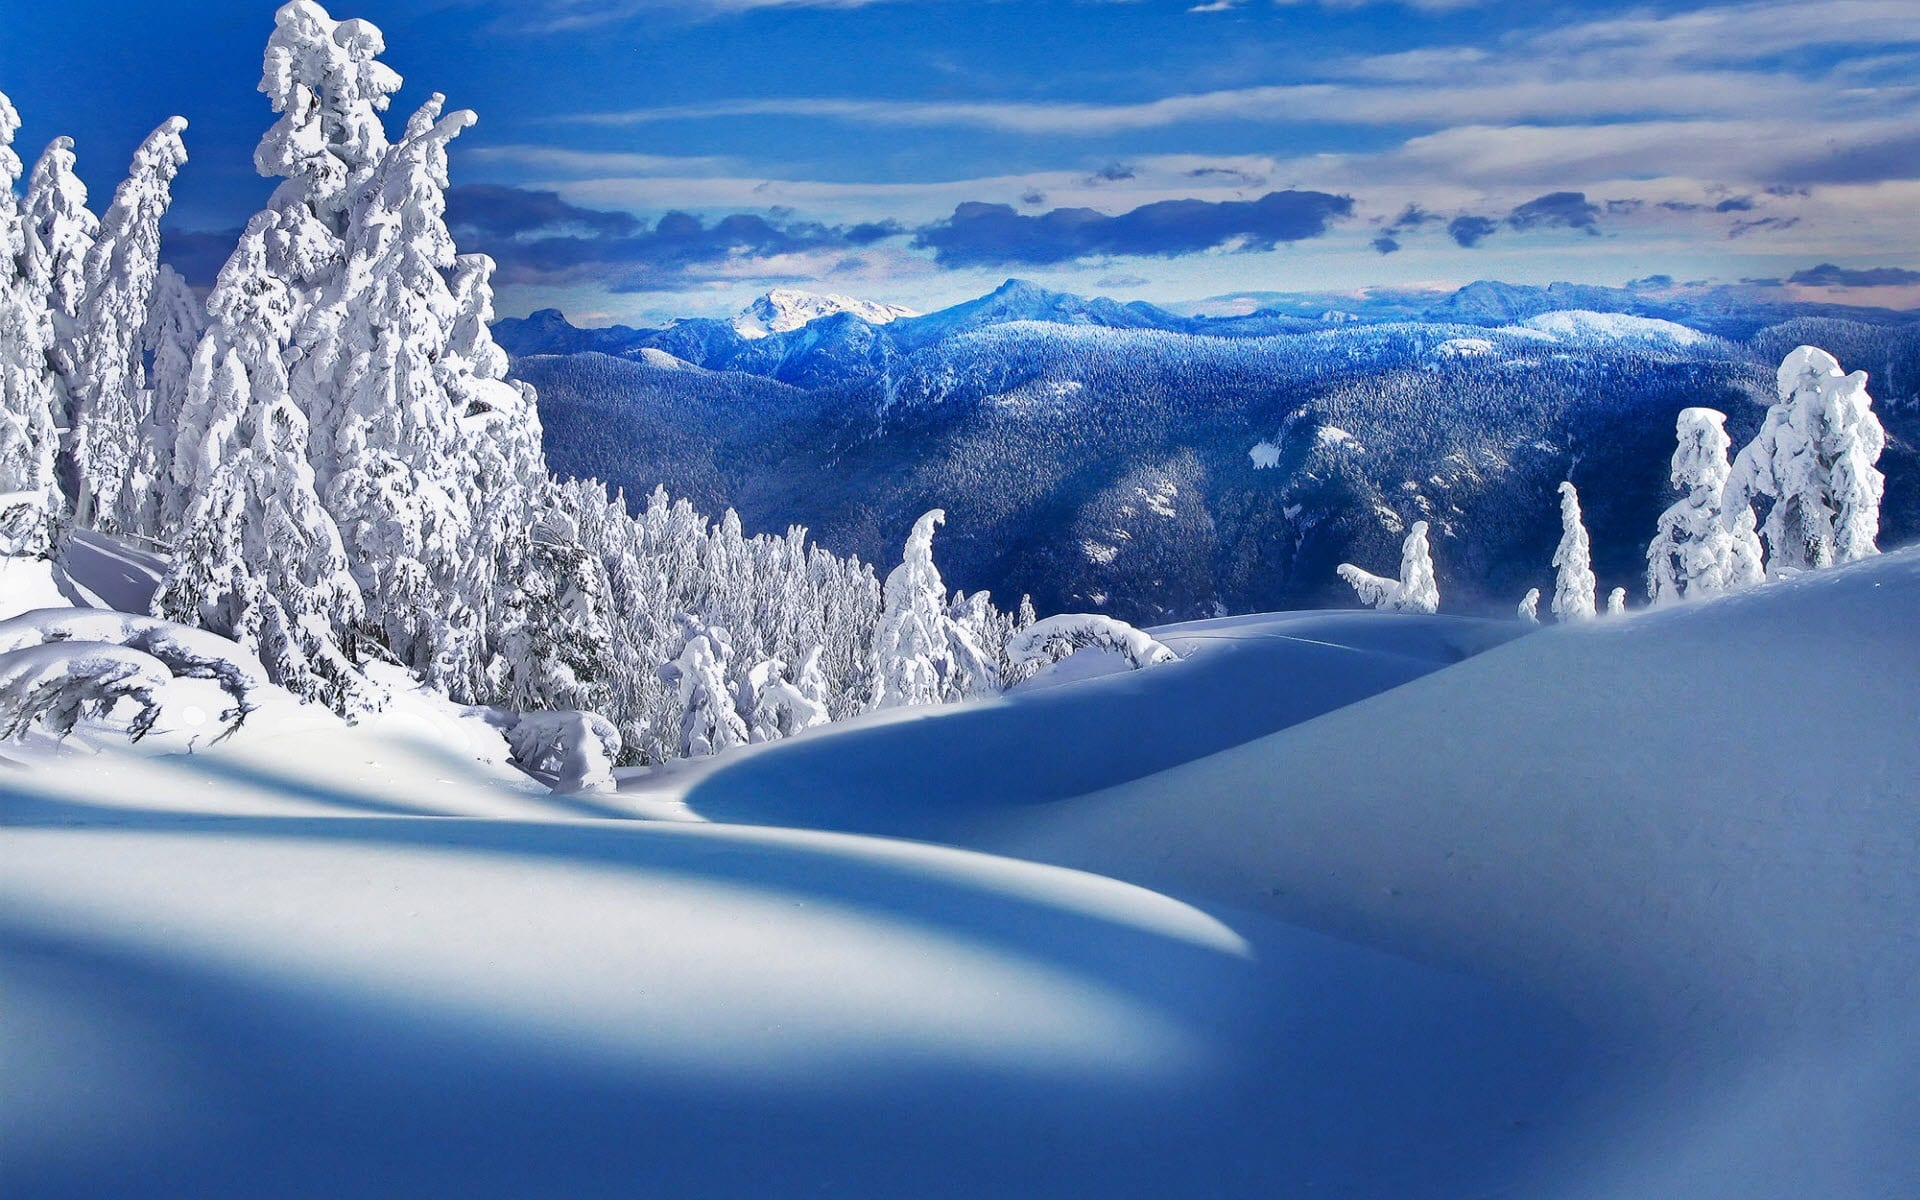 Snowy Background With Mountain: $300 Off Flights From Australia To Canada